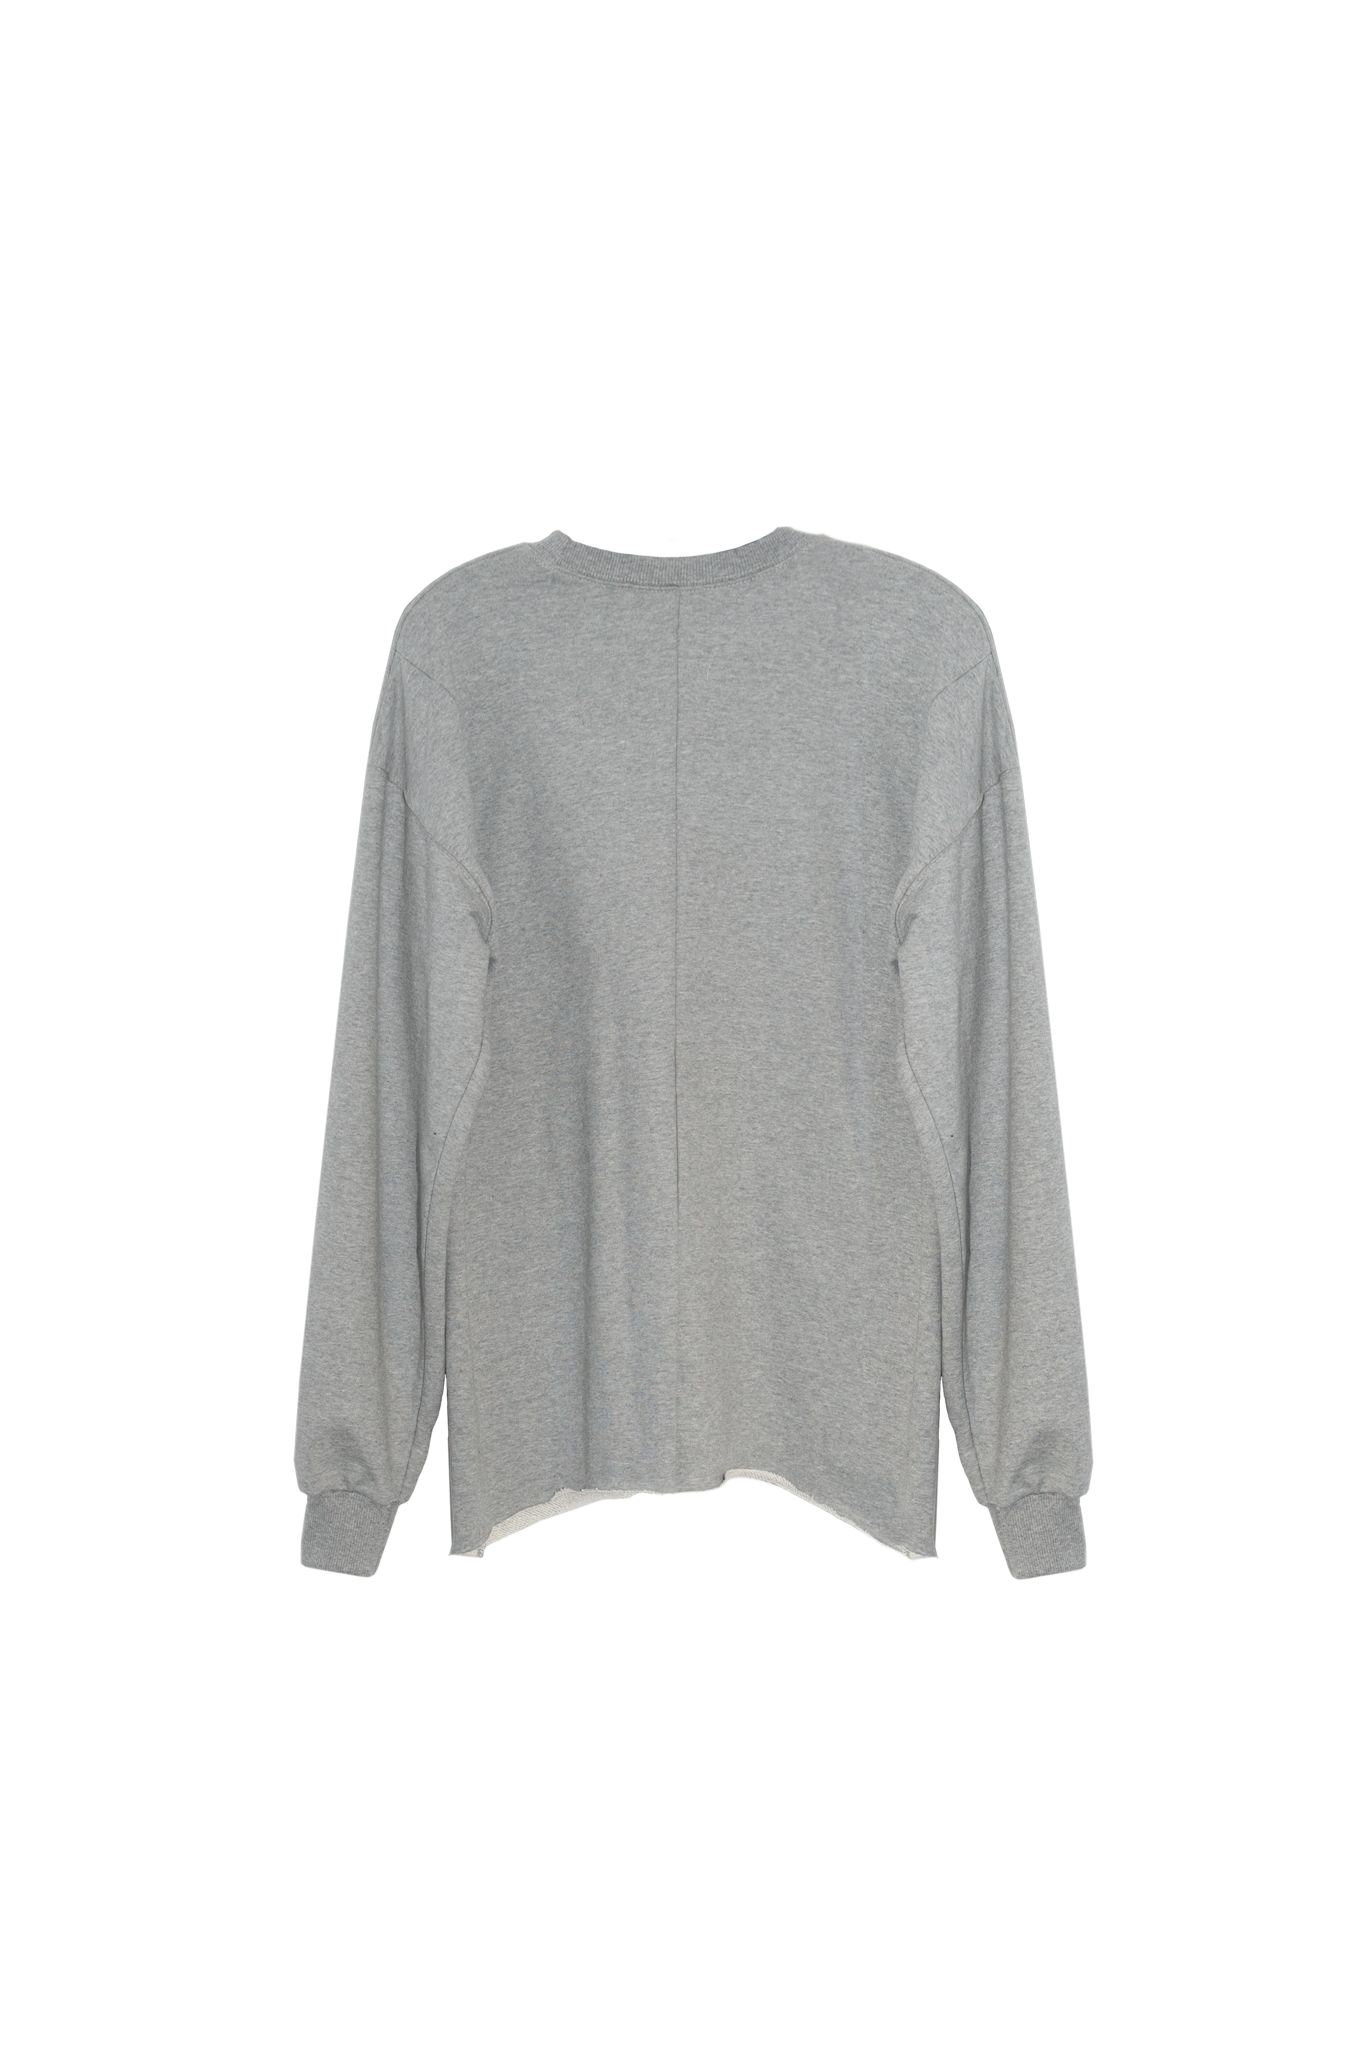 Crewneck DSRS raw cut gray